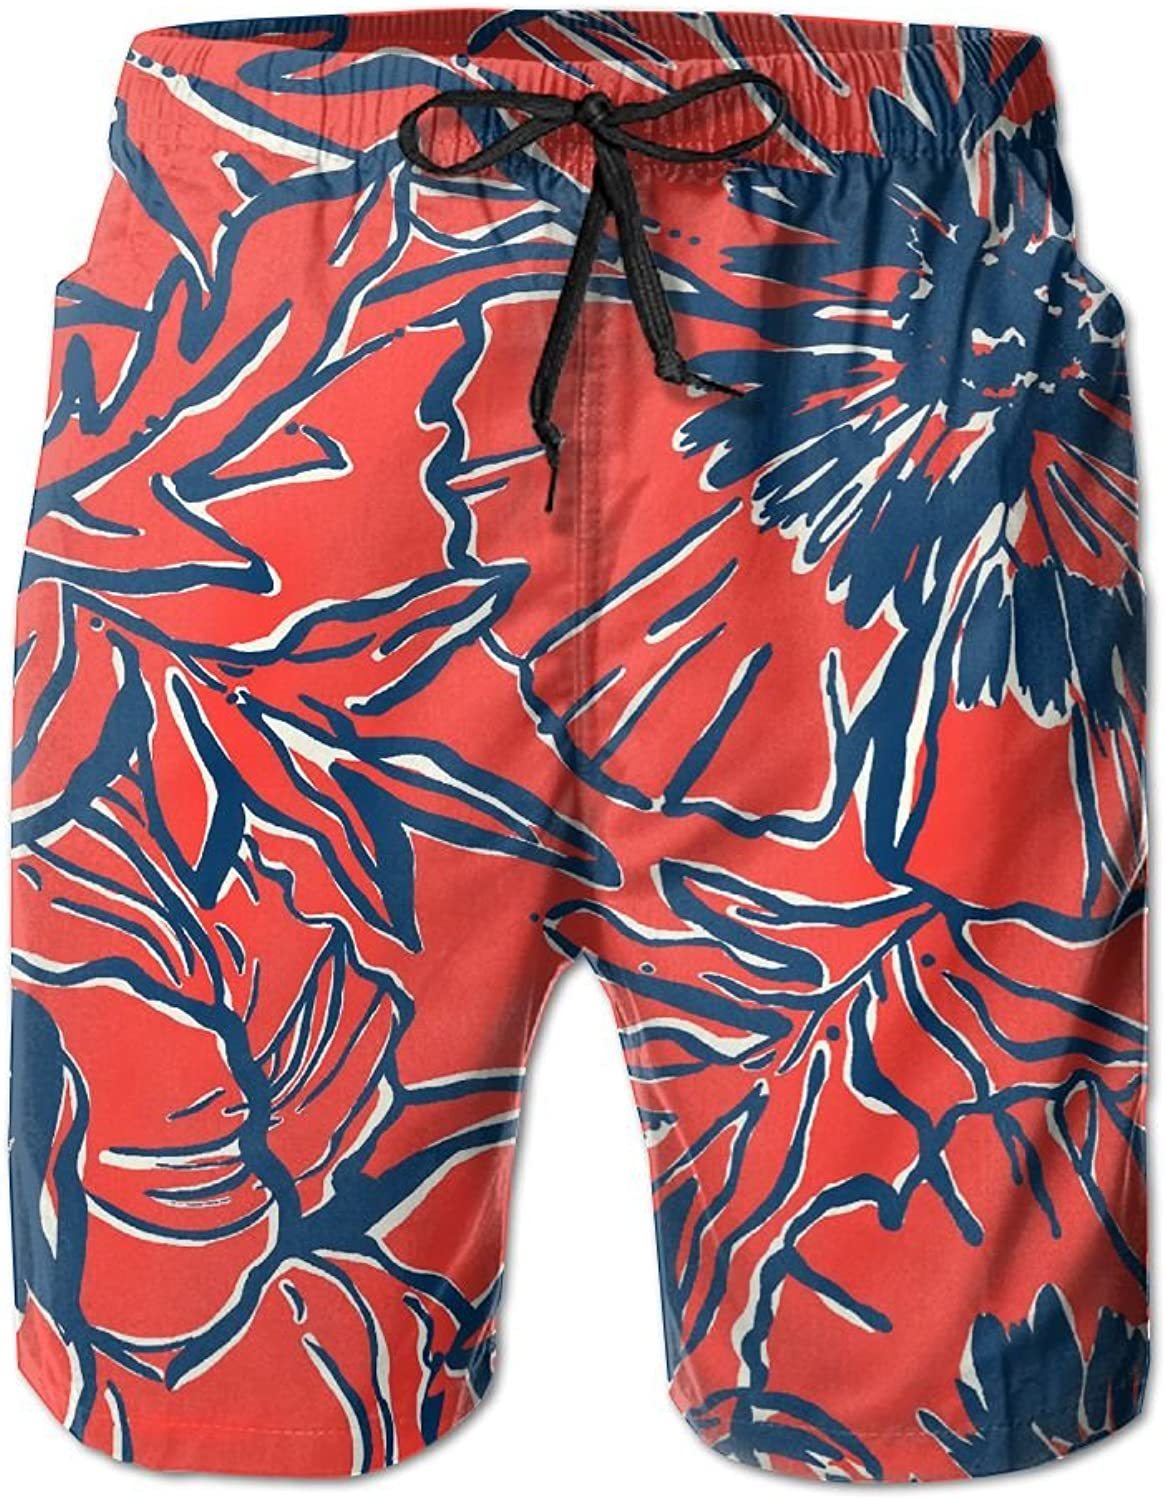 Allywit Mens Linen Cotton Shorts Casual Classic Regular Fit Beach Short Pants with Pocket Beach Shorts